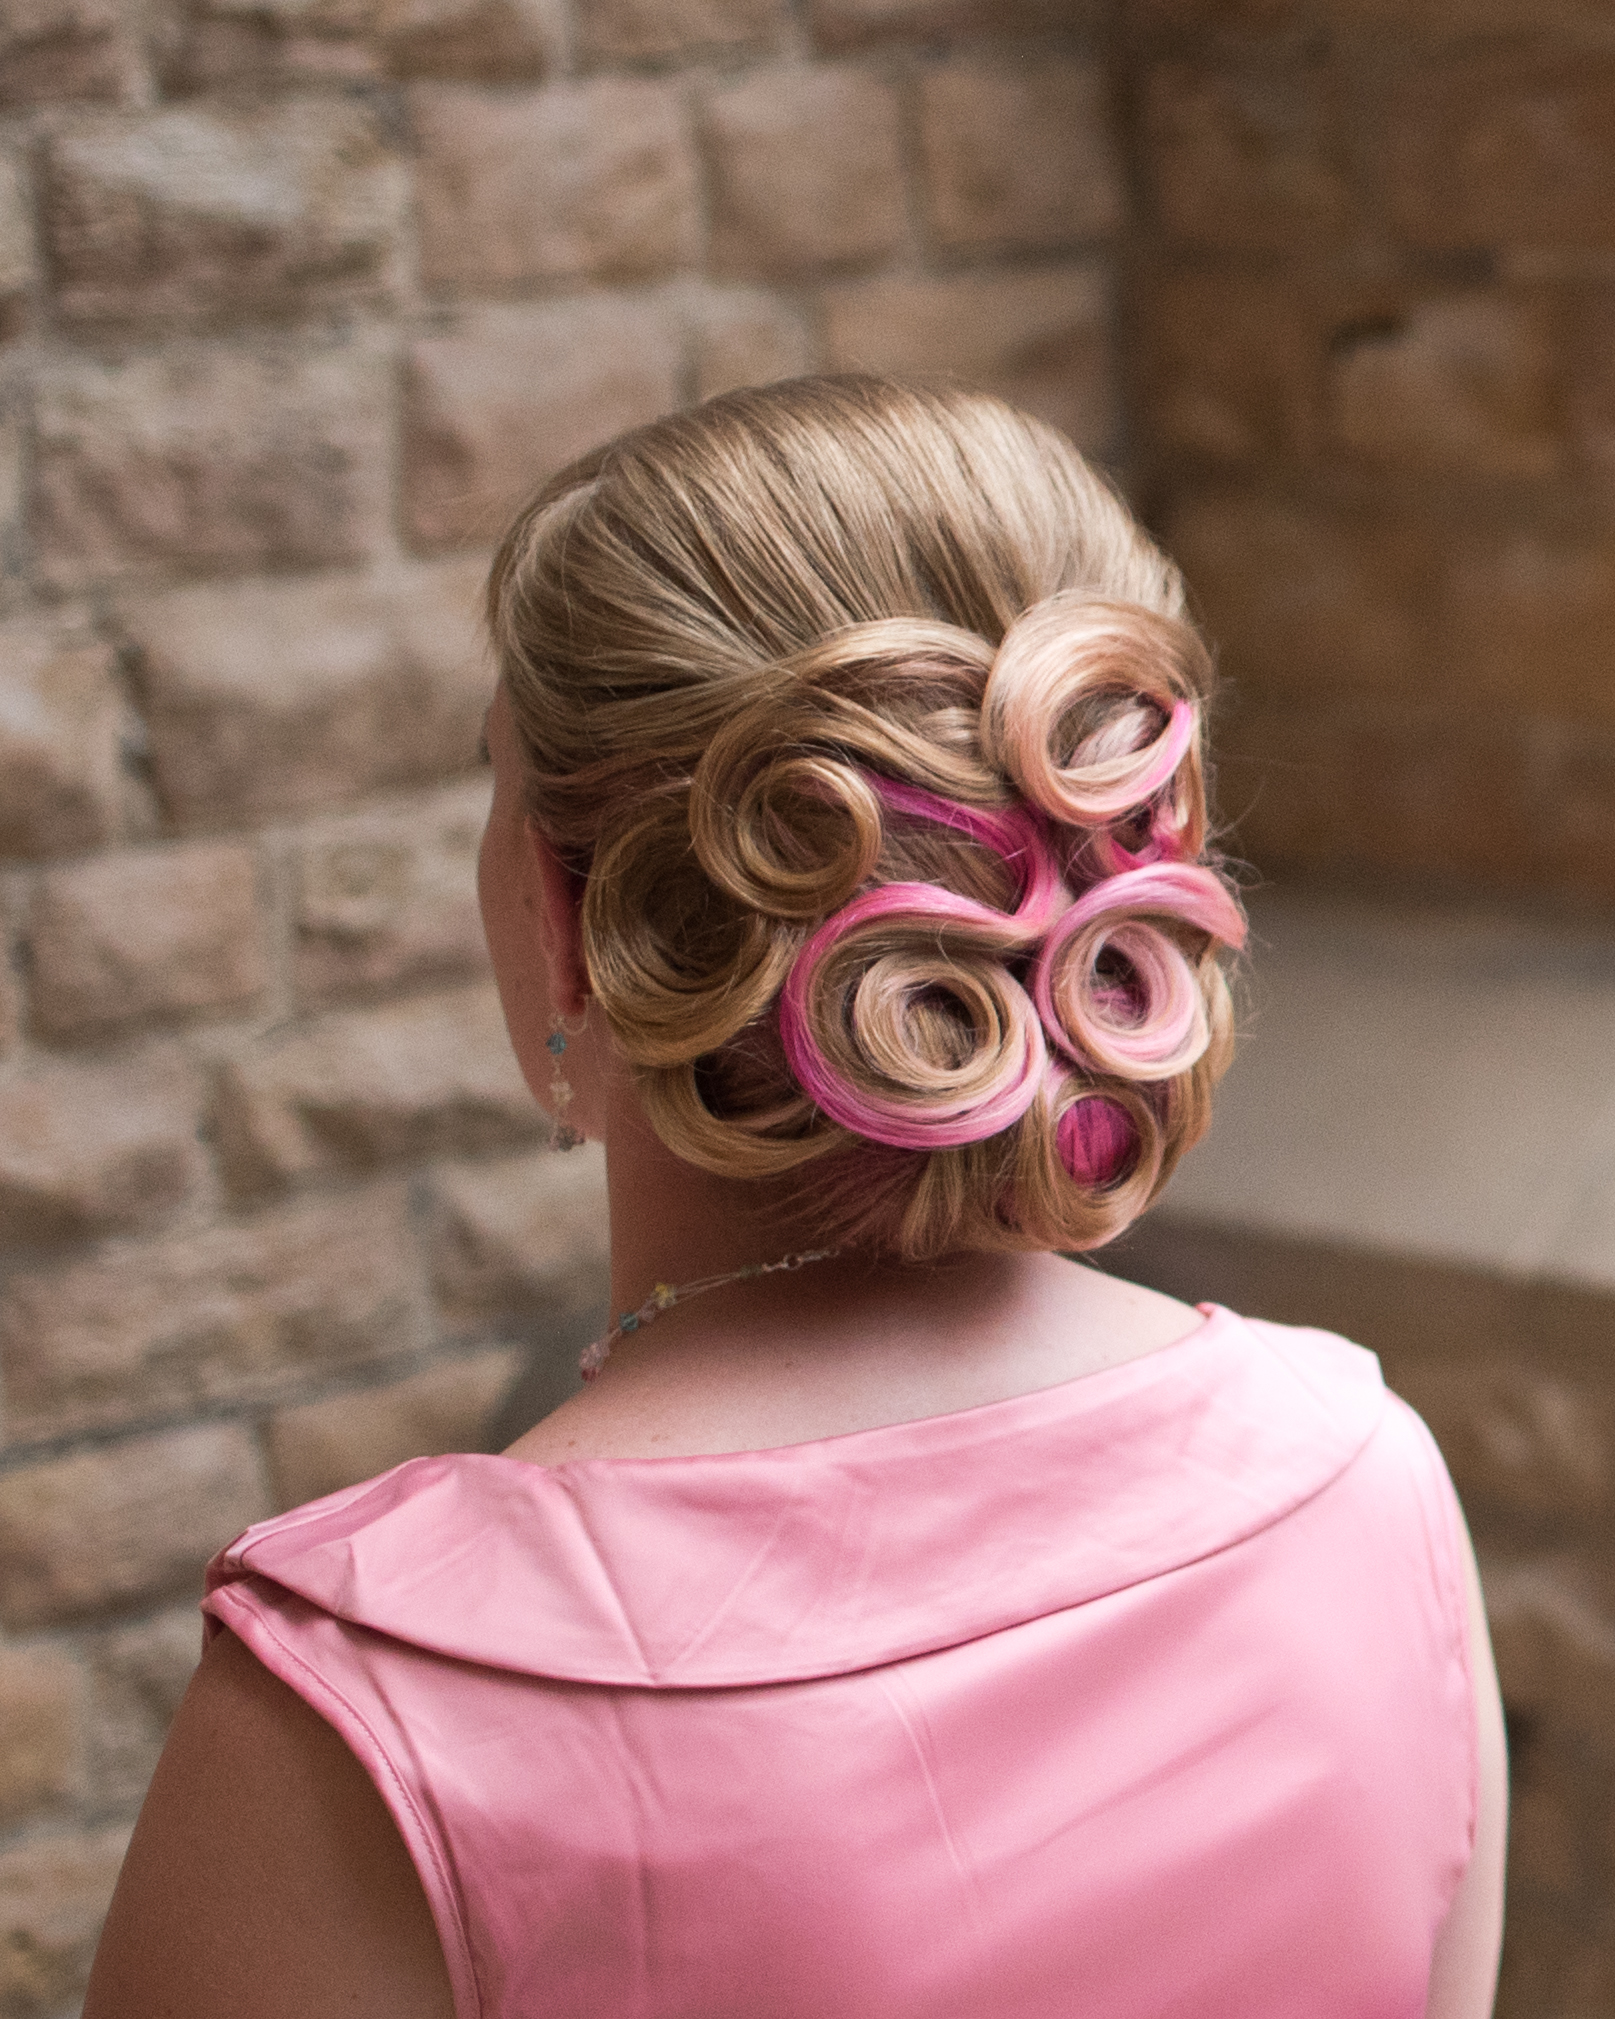 Hair styling by The Little Vintage Beauty Parlour - Photo by Dave Fuller